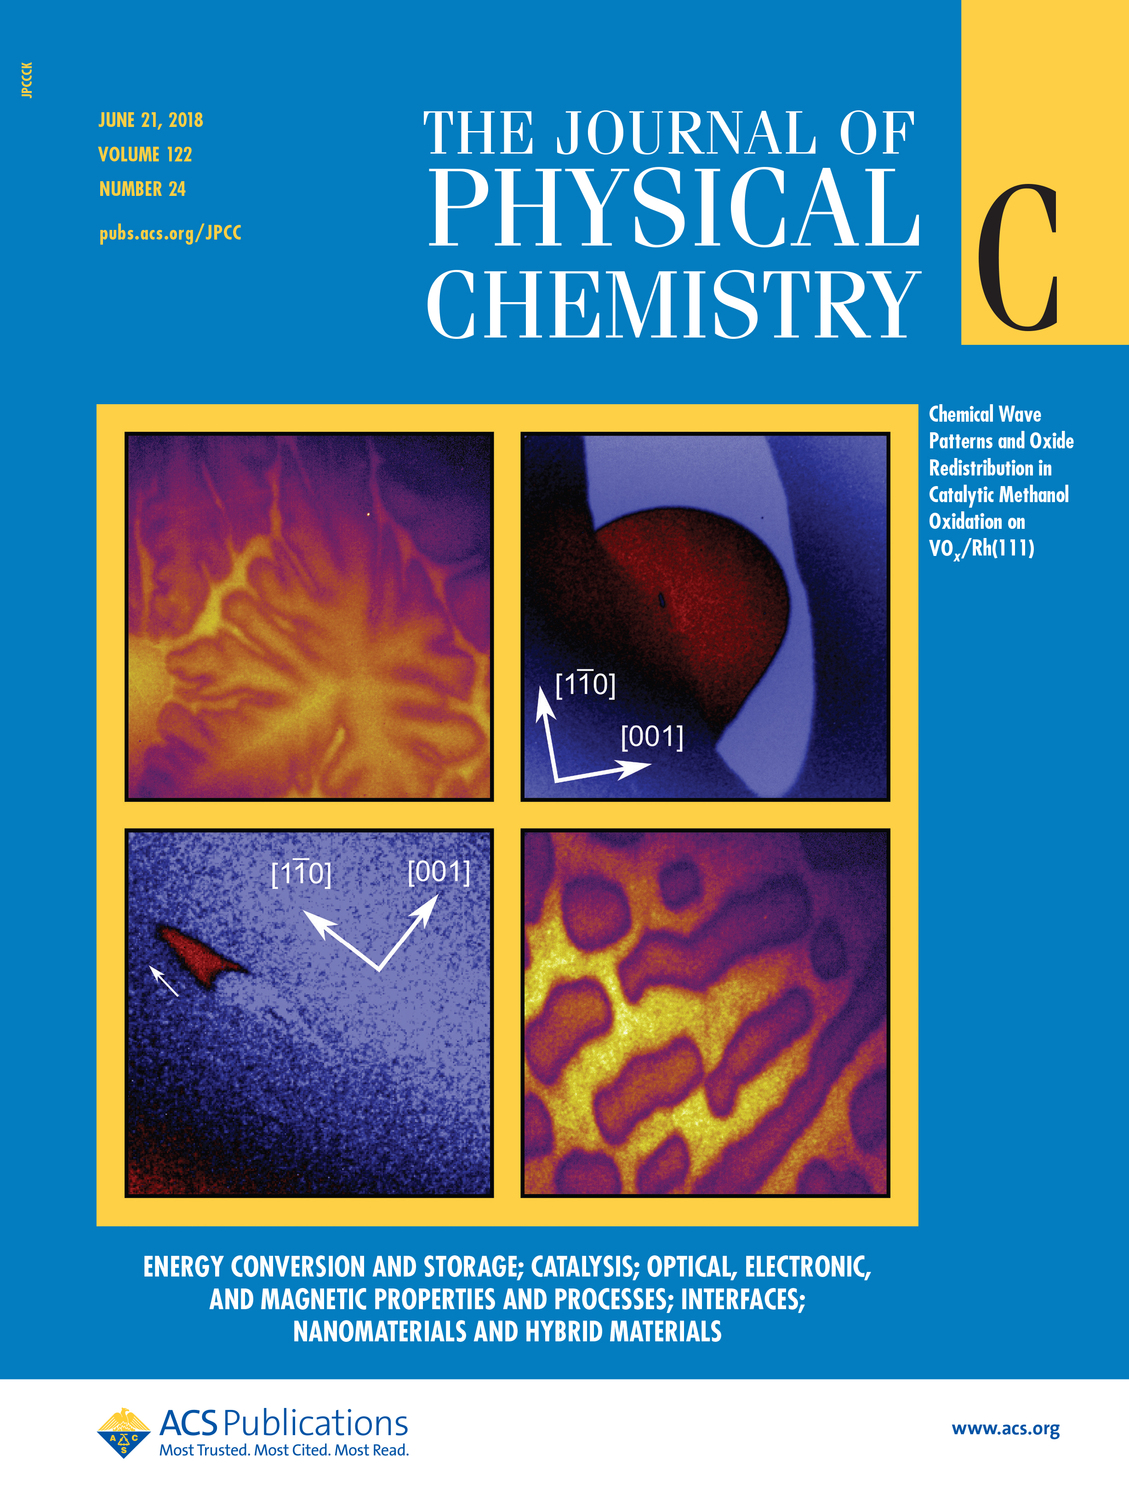 Coverpage of The Journal of Physical Chemistry C Vol.122 Number 24 in June 21, 2018